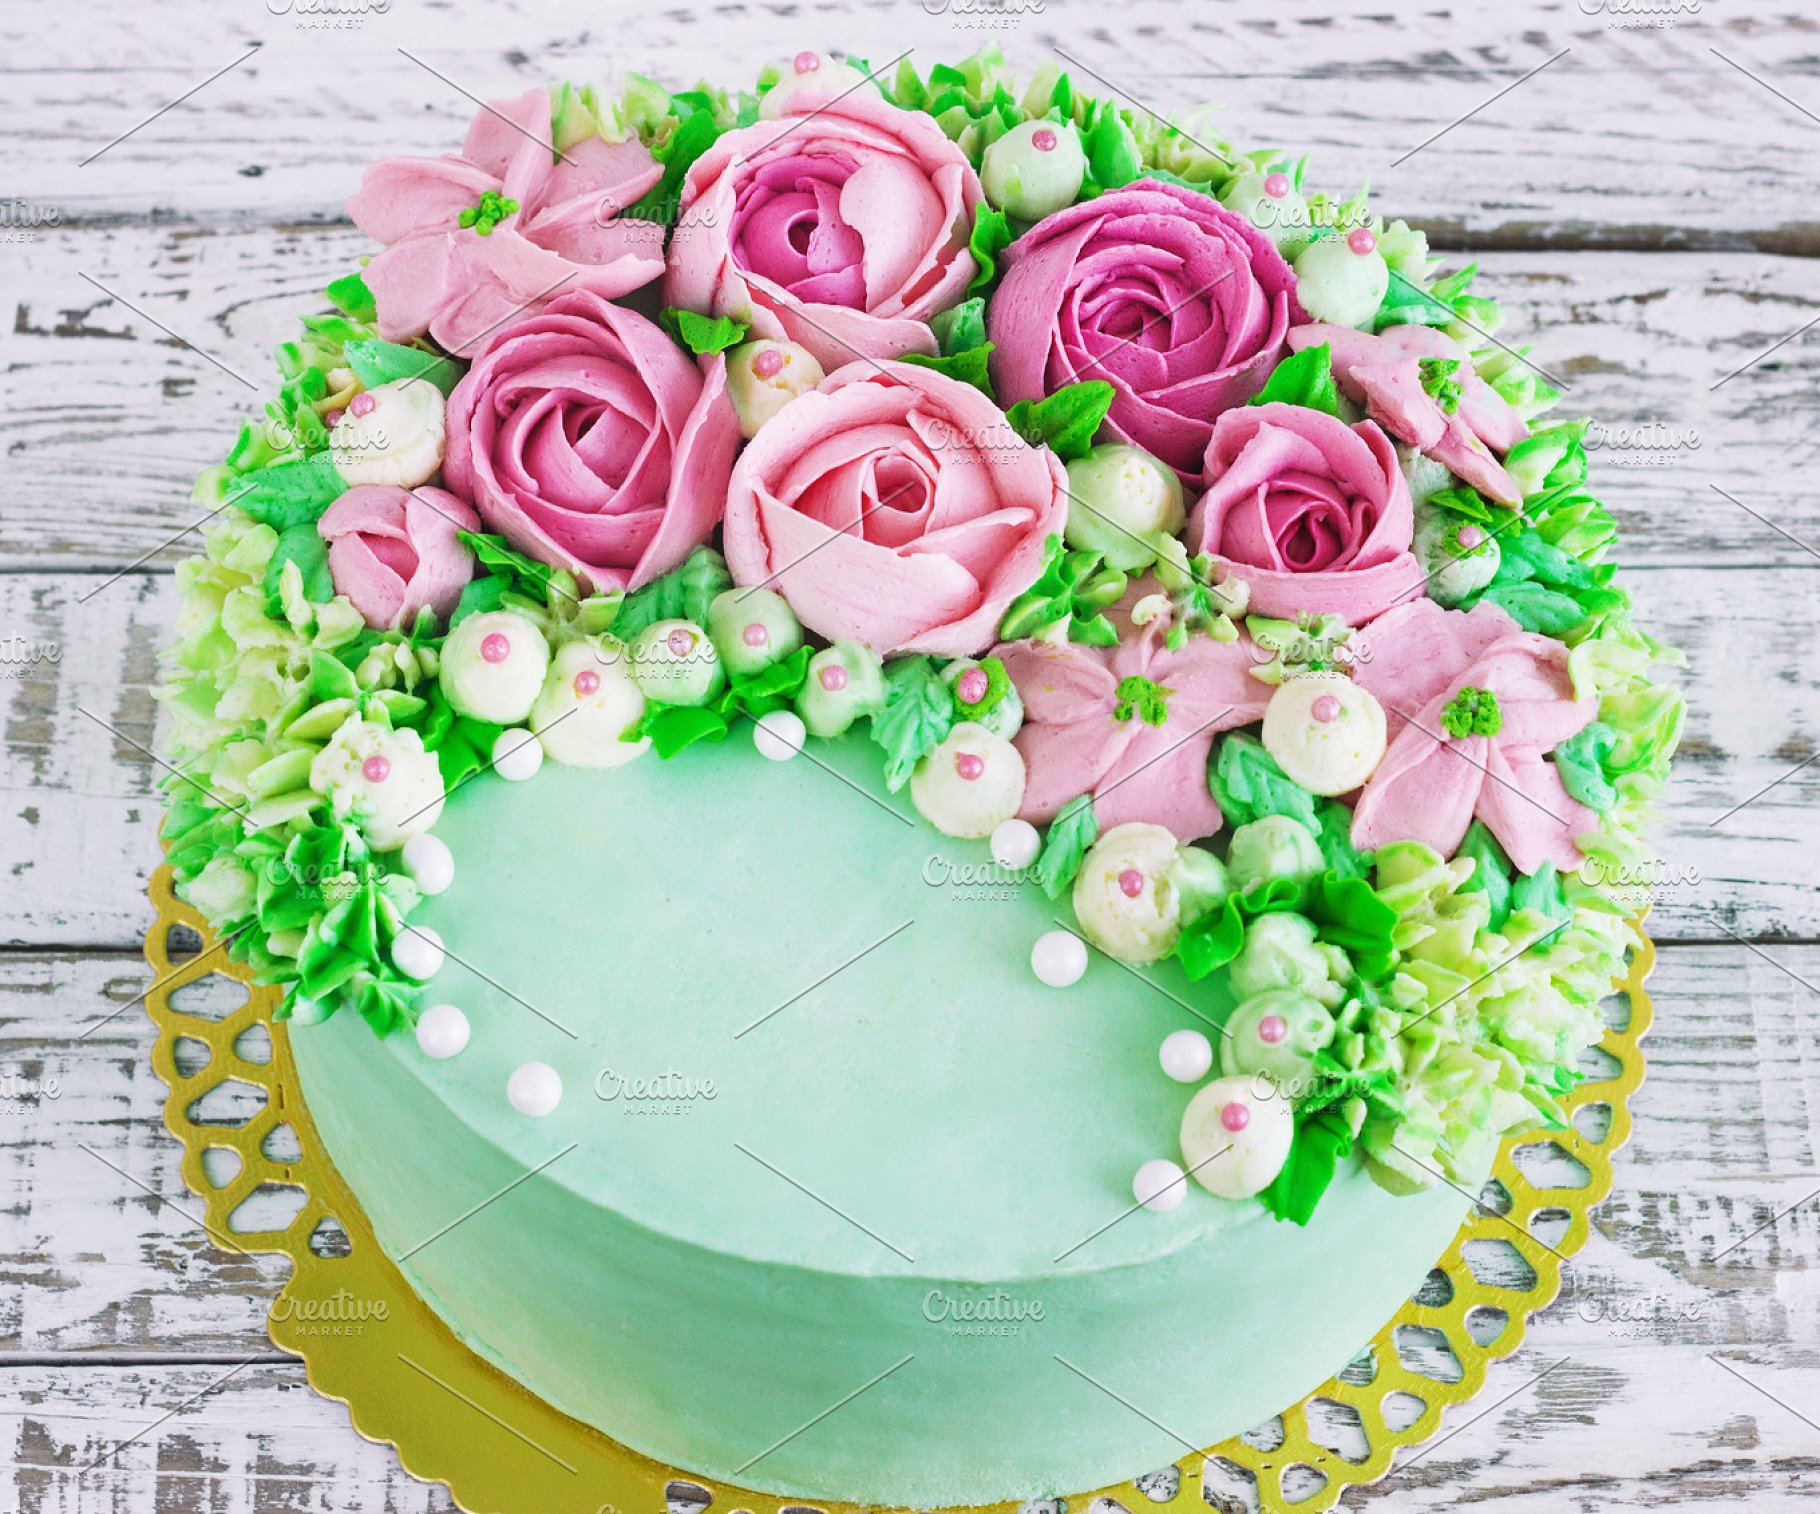 Save Birthday Cake With Flowers Rose